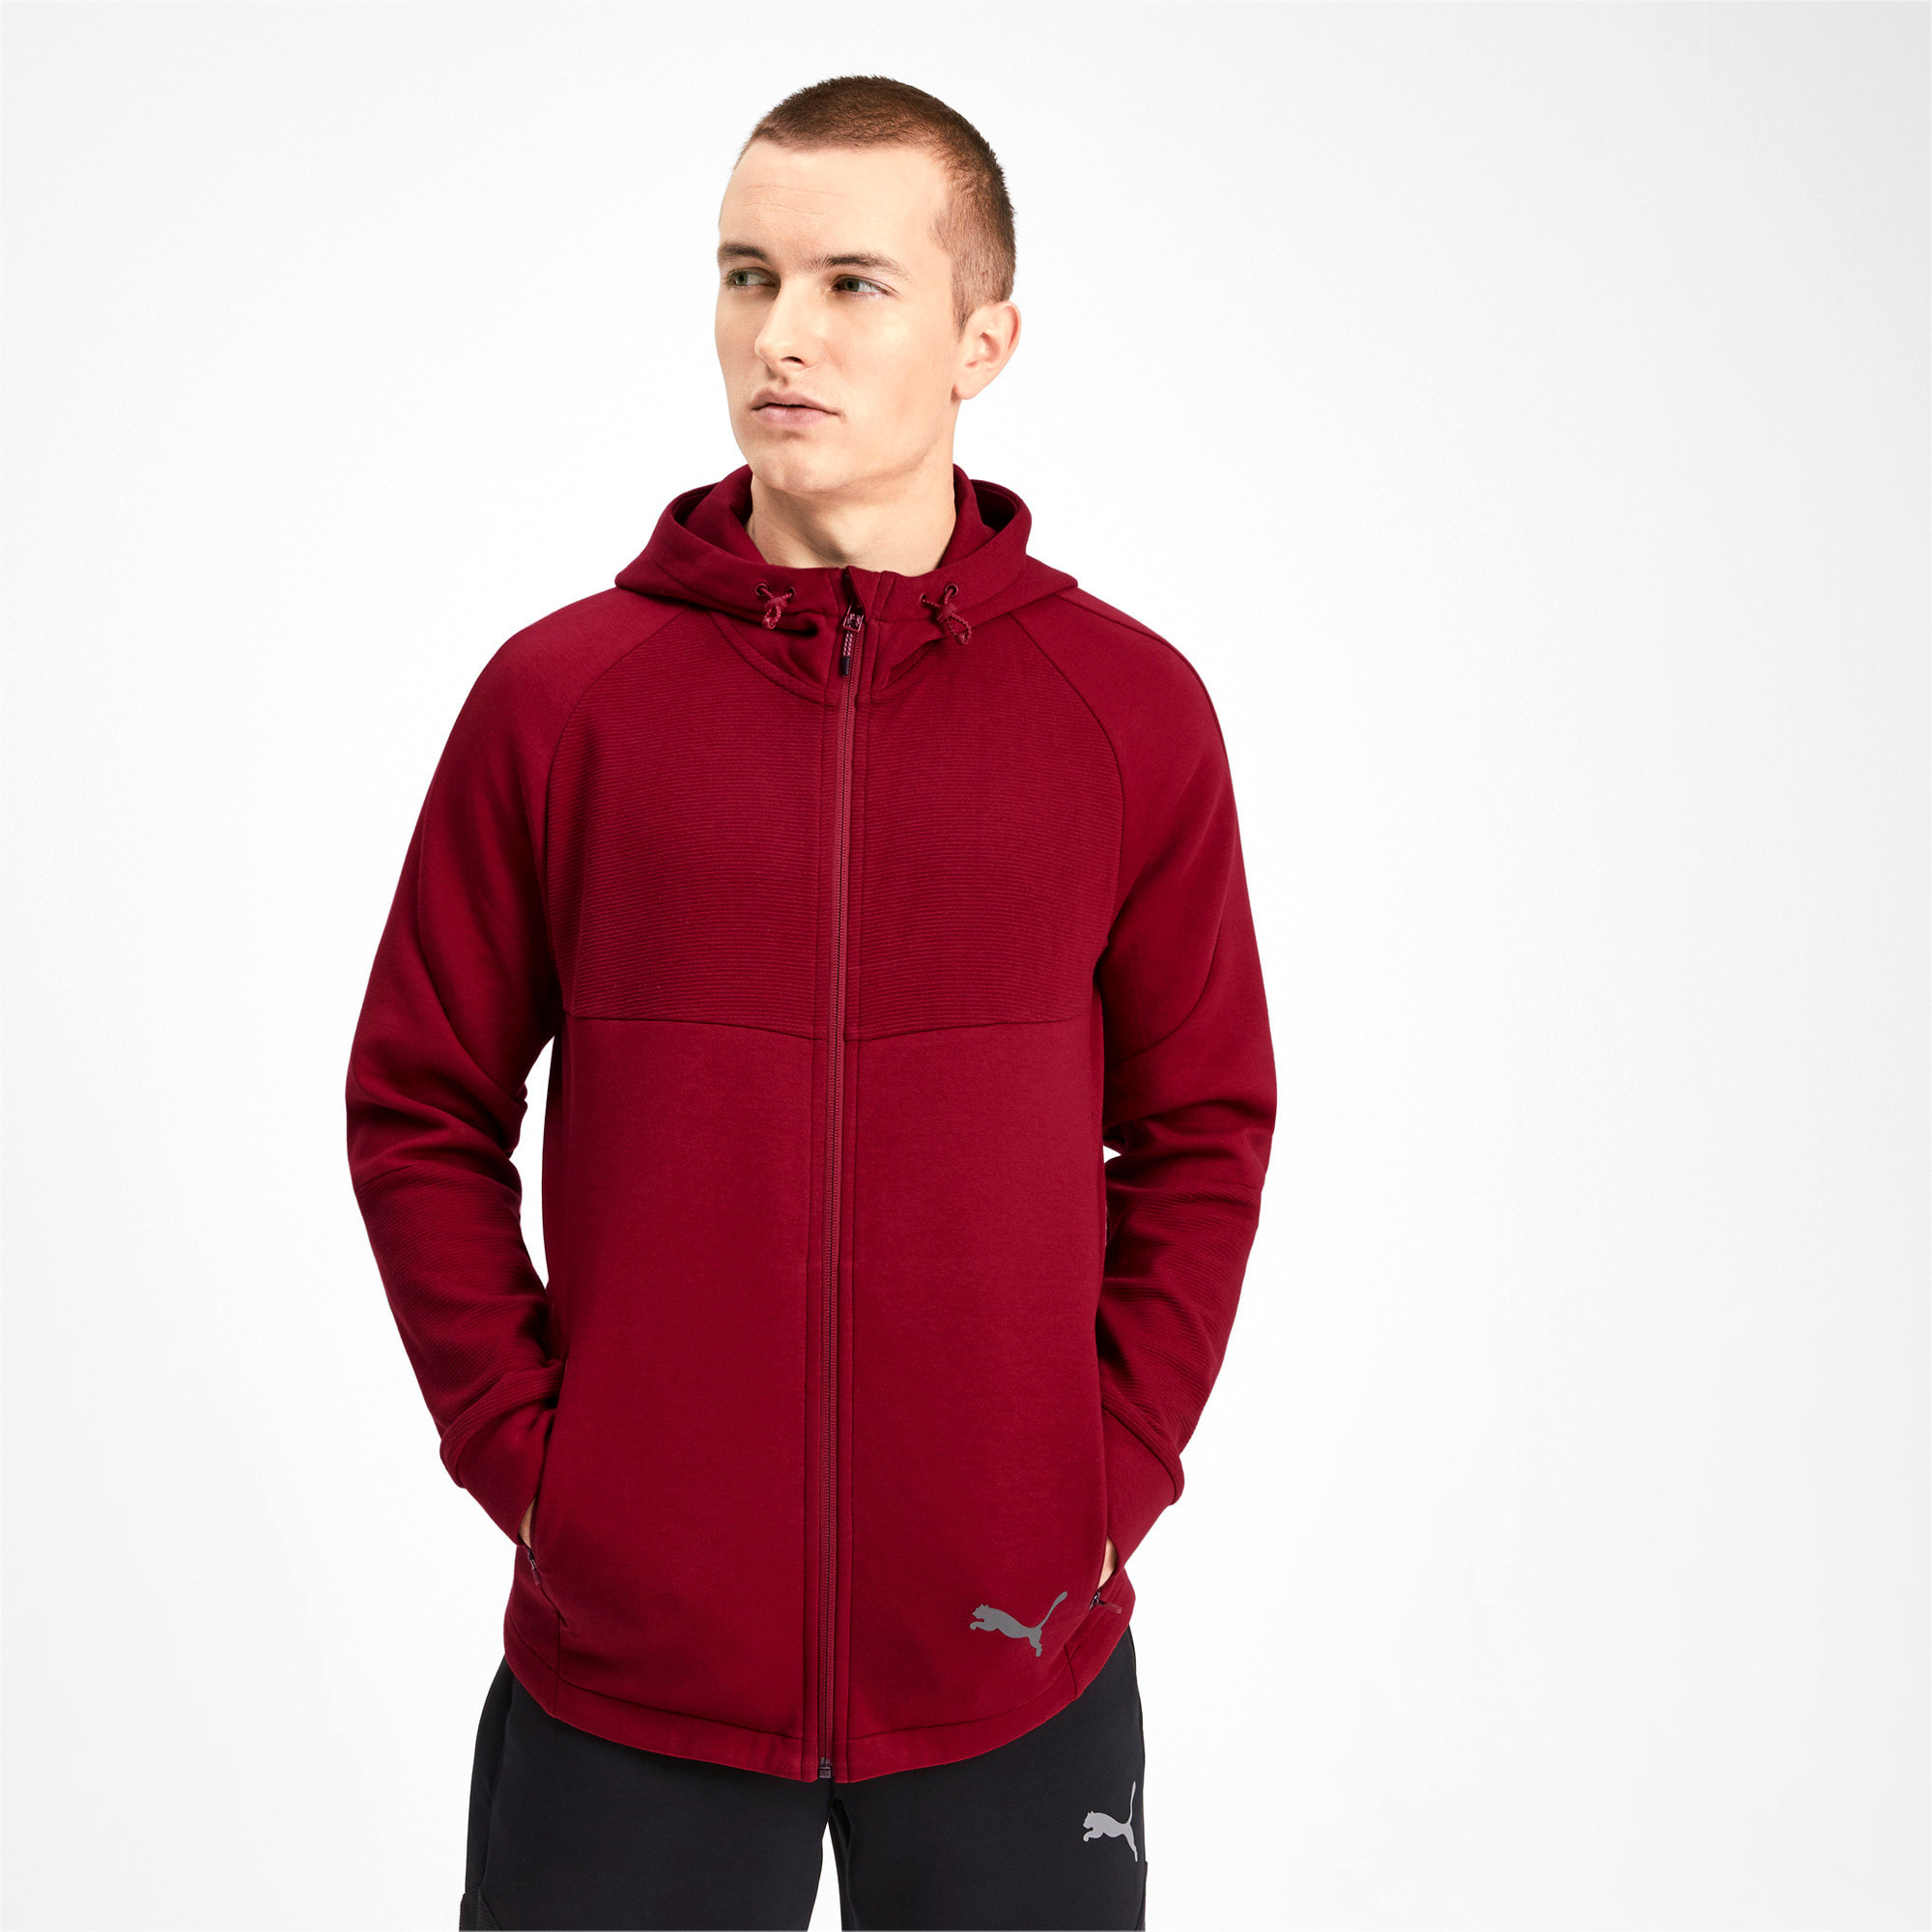 Thumbnail 1 of Evostripe Men's Full Zip Hoodie, Rhubarb, medium